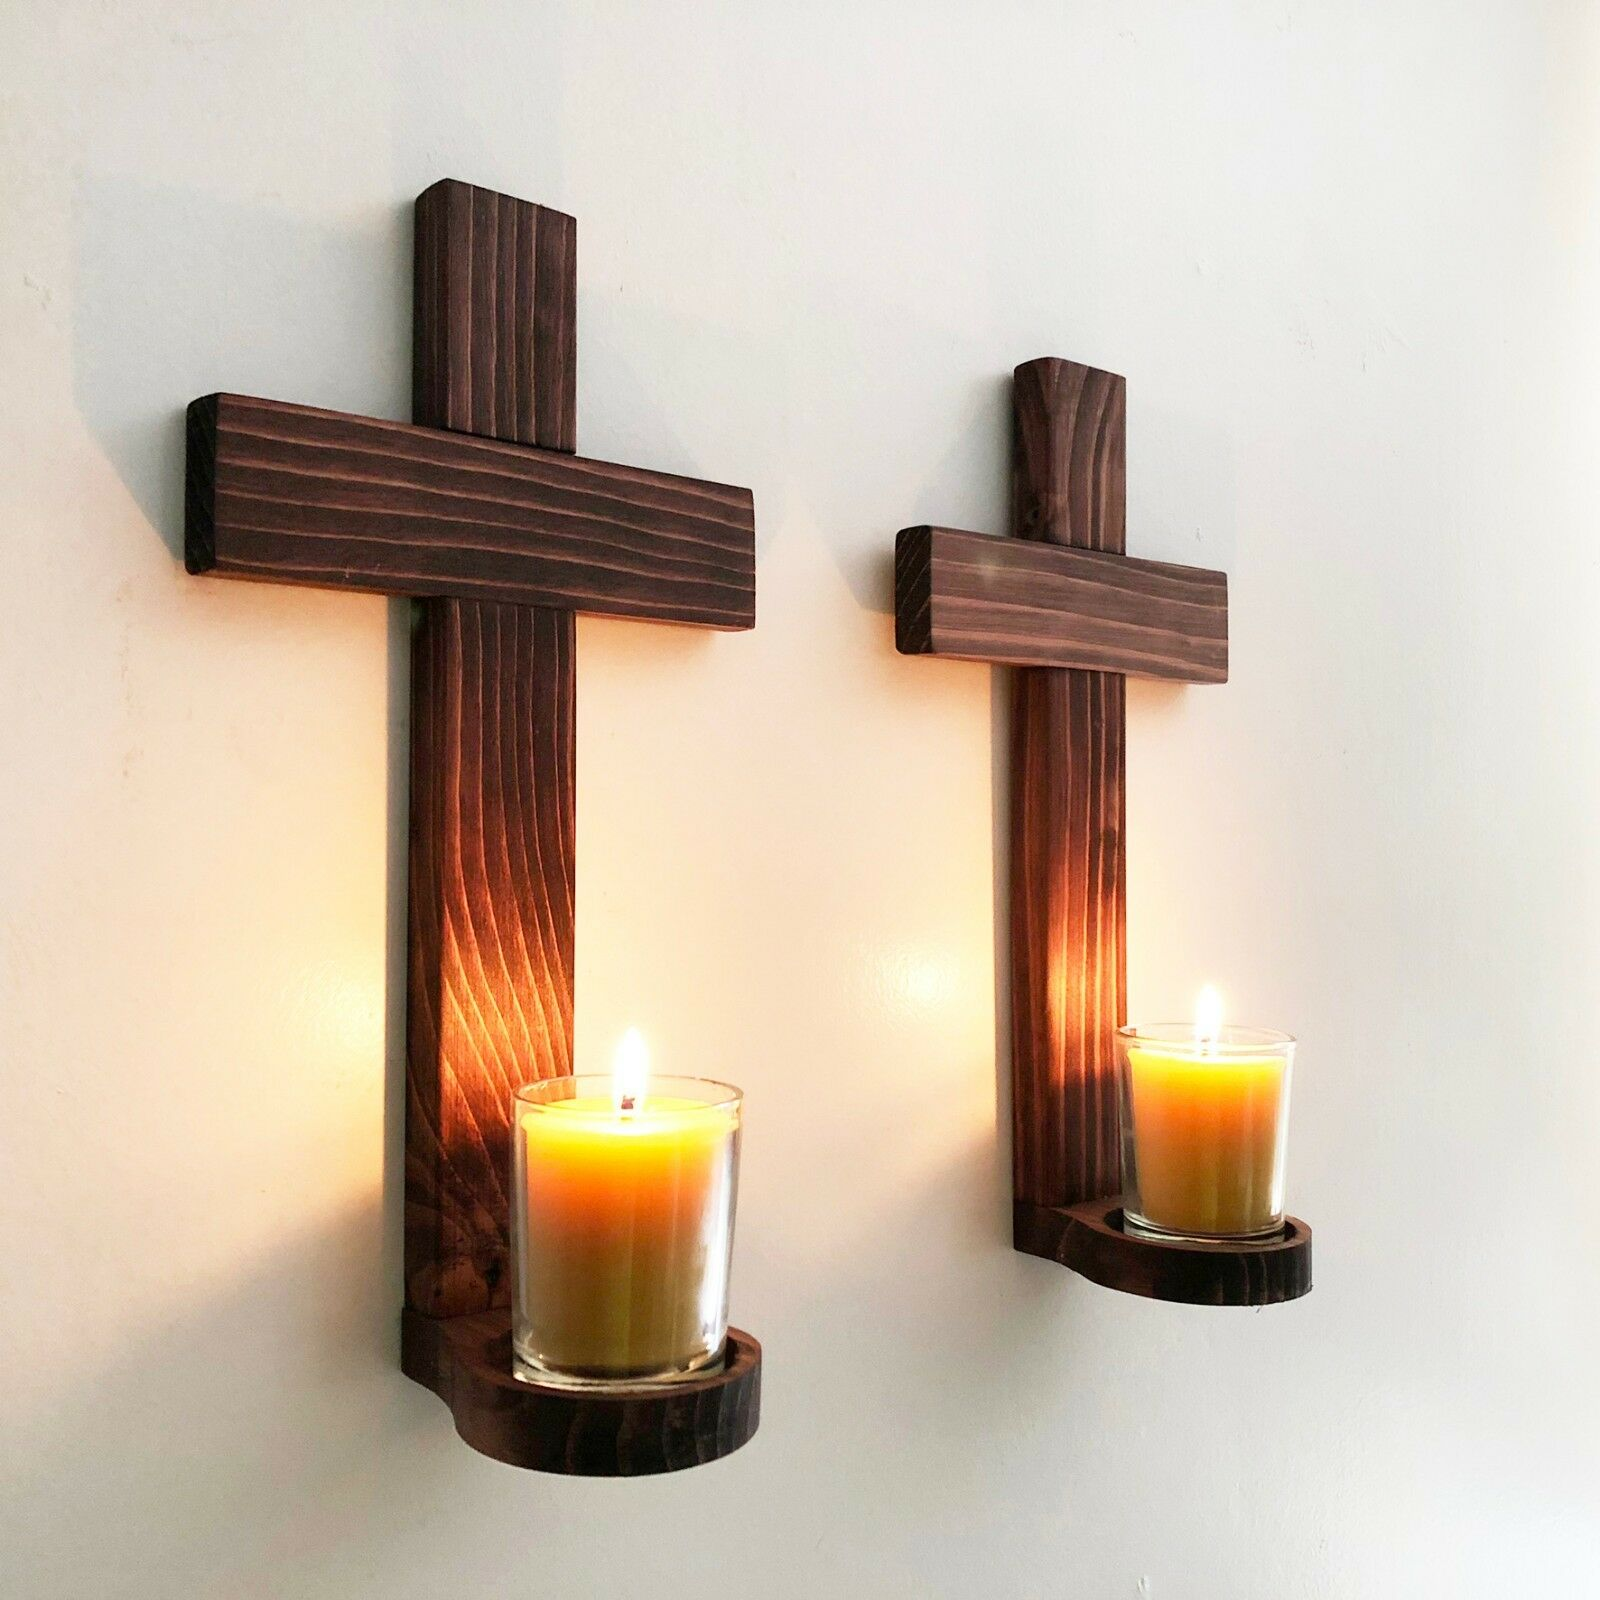 Set of Two Hand Crafted Wooden Wall Crosses Votive Candle Holders